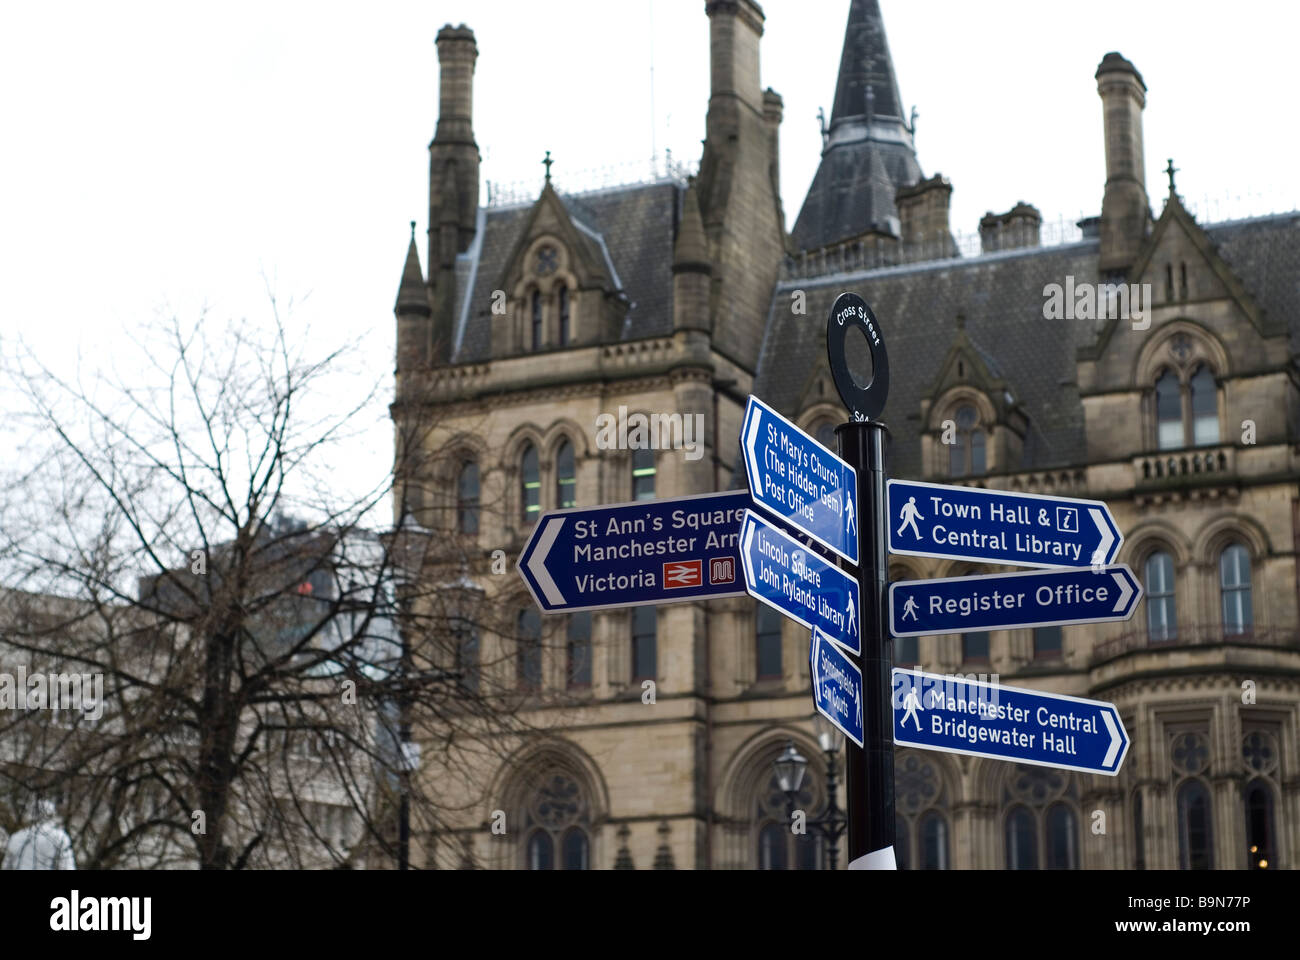 Road signs outside the Town Hall in Albert Square Manchester city centre UK - Stock Image